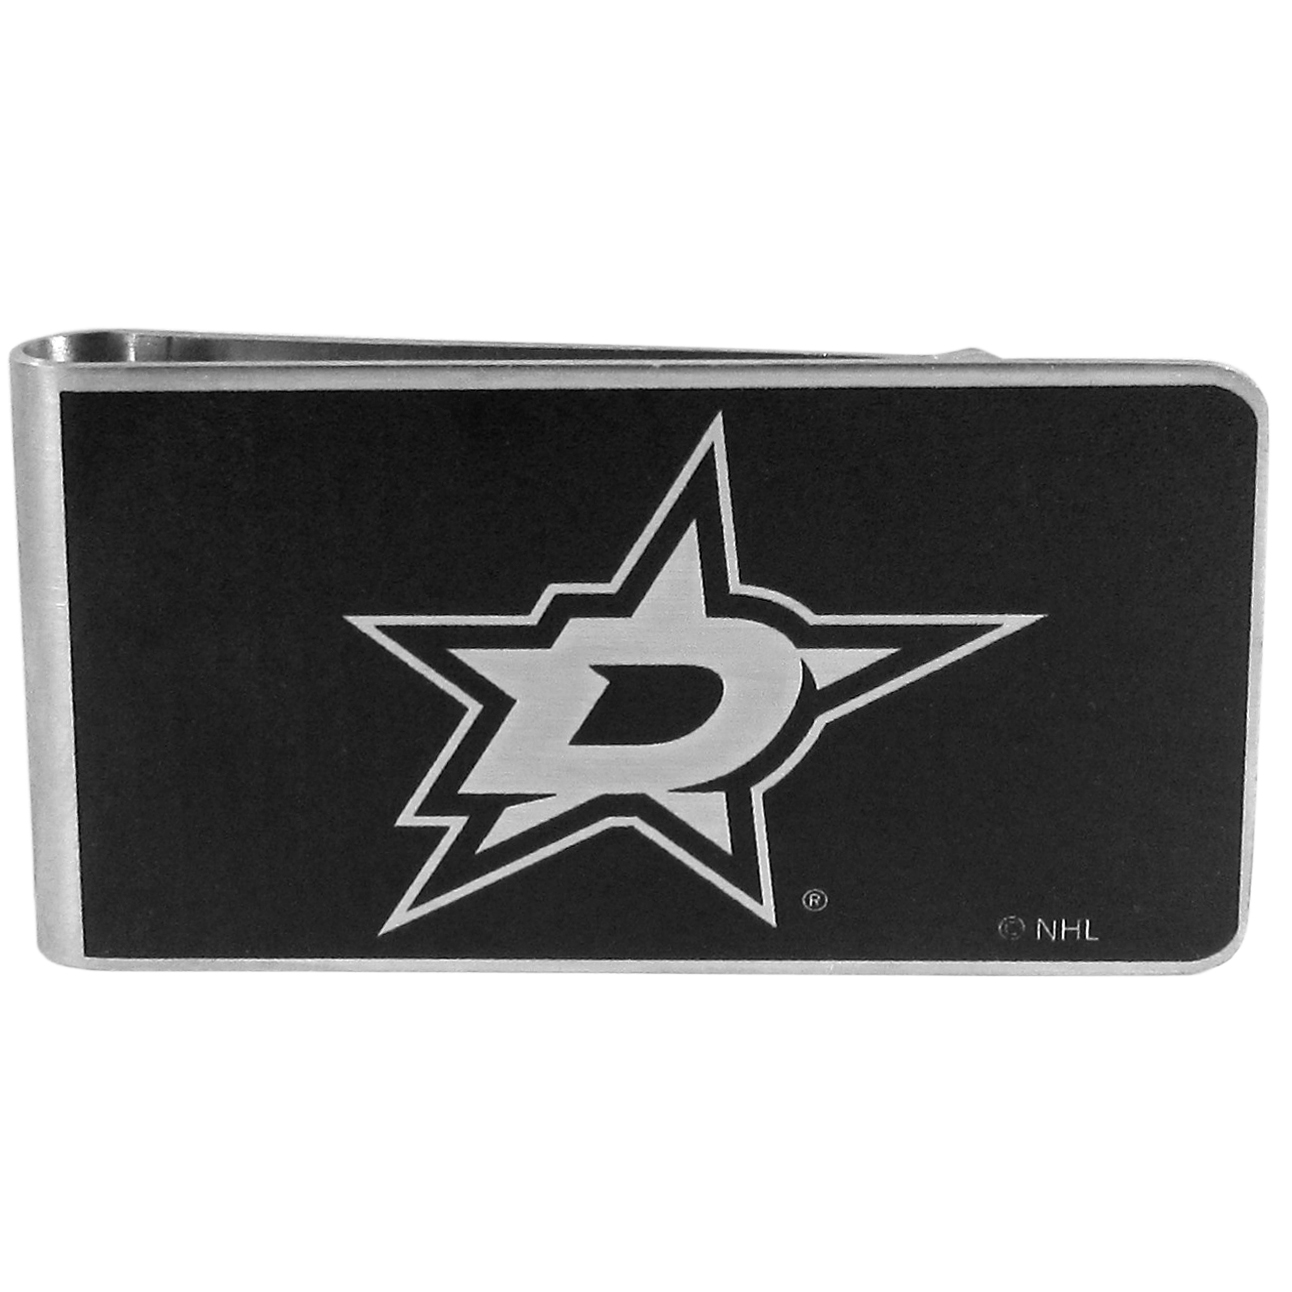 Dallas Stars™ Black and Steel Money Clip - Our monochromatic steel money clips have a classic style and superior quality. The strong, steel clip has a black overlay of the Dallas Stars™ logo over the brushed metal finish creating a stylish men's fashion accessory that would make any fan proud.